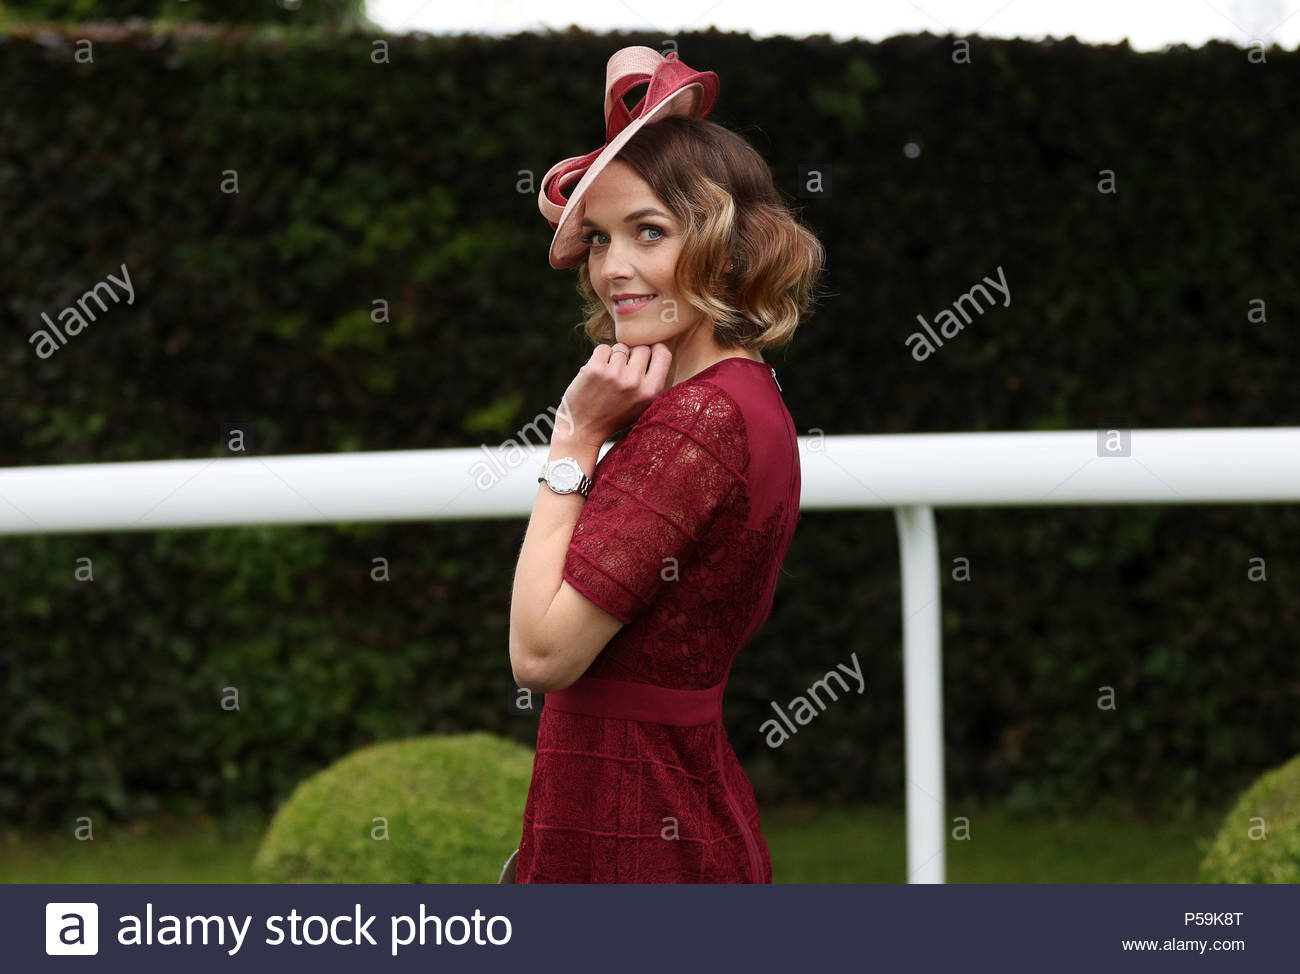 "File photo dated 02/06/18 of Victoria Pendleton, who has said she feels ""psychologically and physiologically damaged"" since having to pull out of a Mount Everest climb attempt earlier this year. - Stock Image"